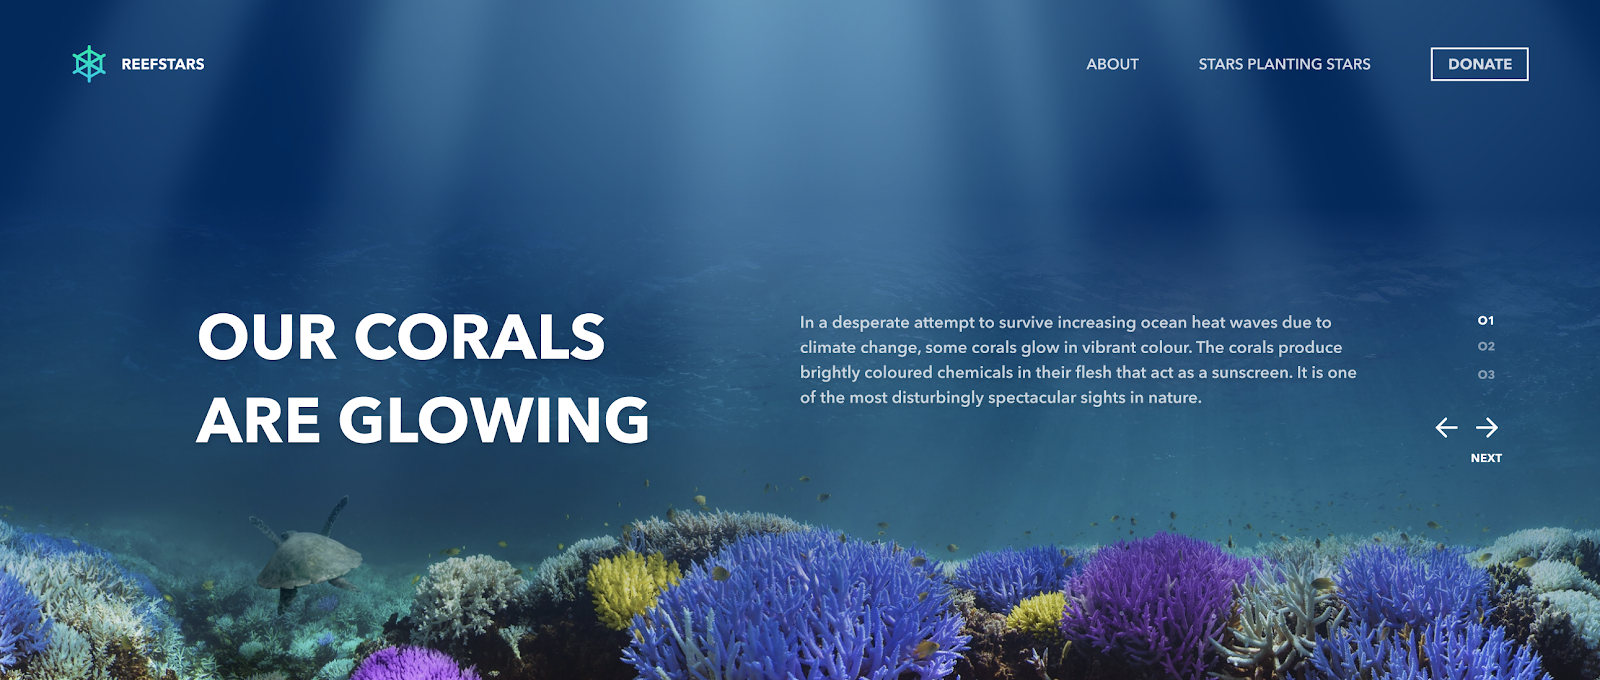 Homepage for the Reefstar project by the Pratt Institute for Adobe Creative Jams.